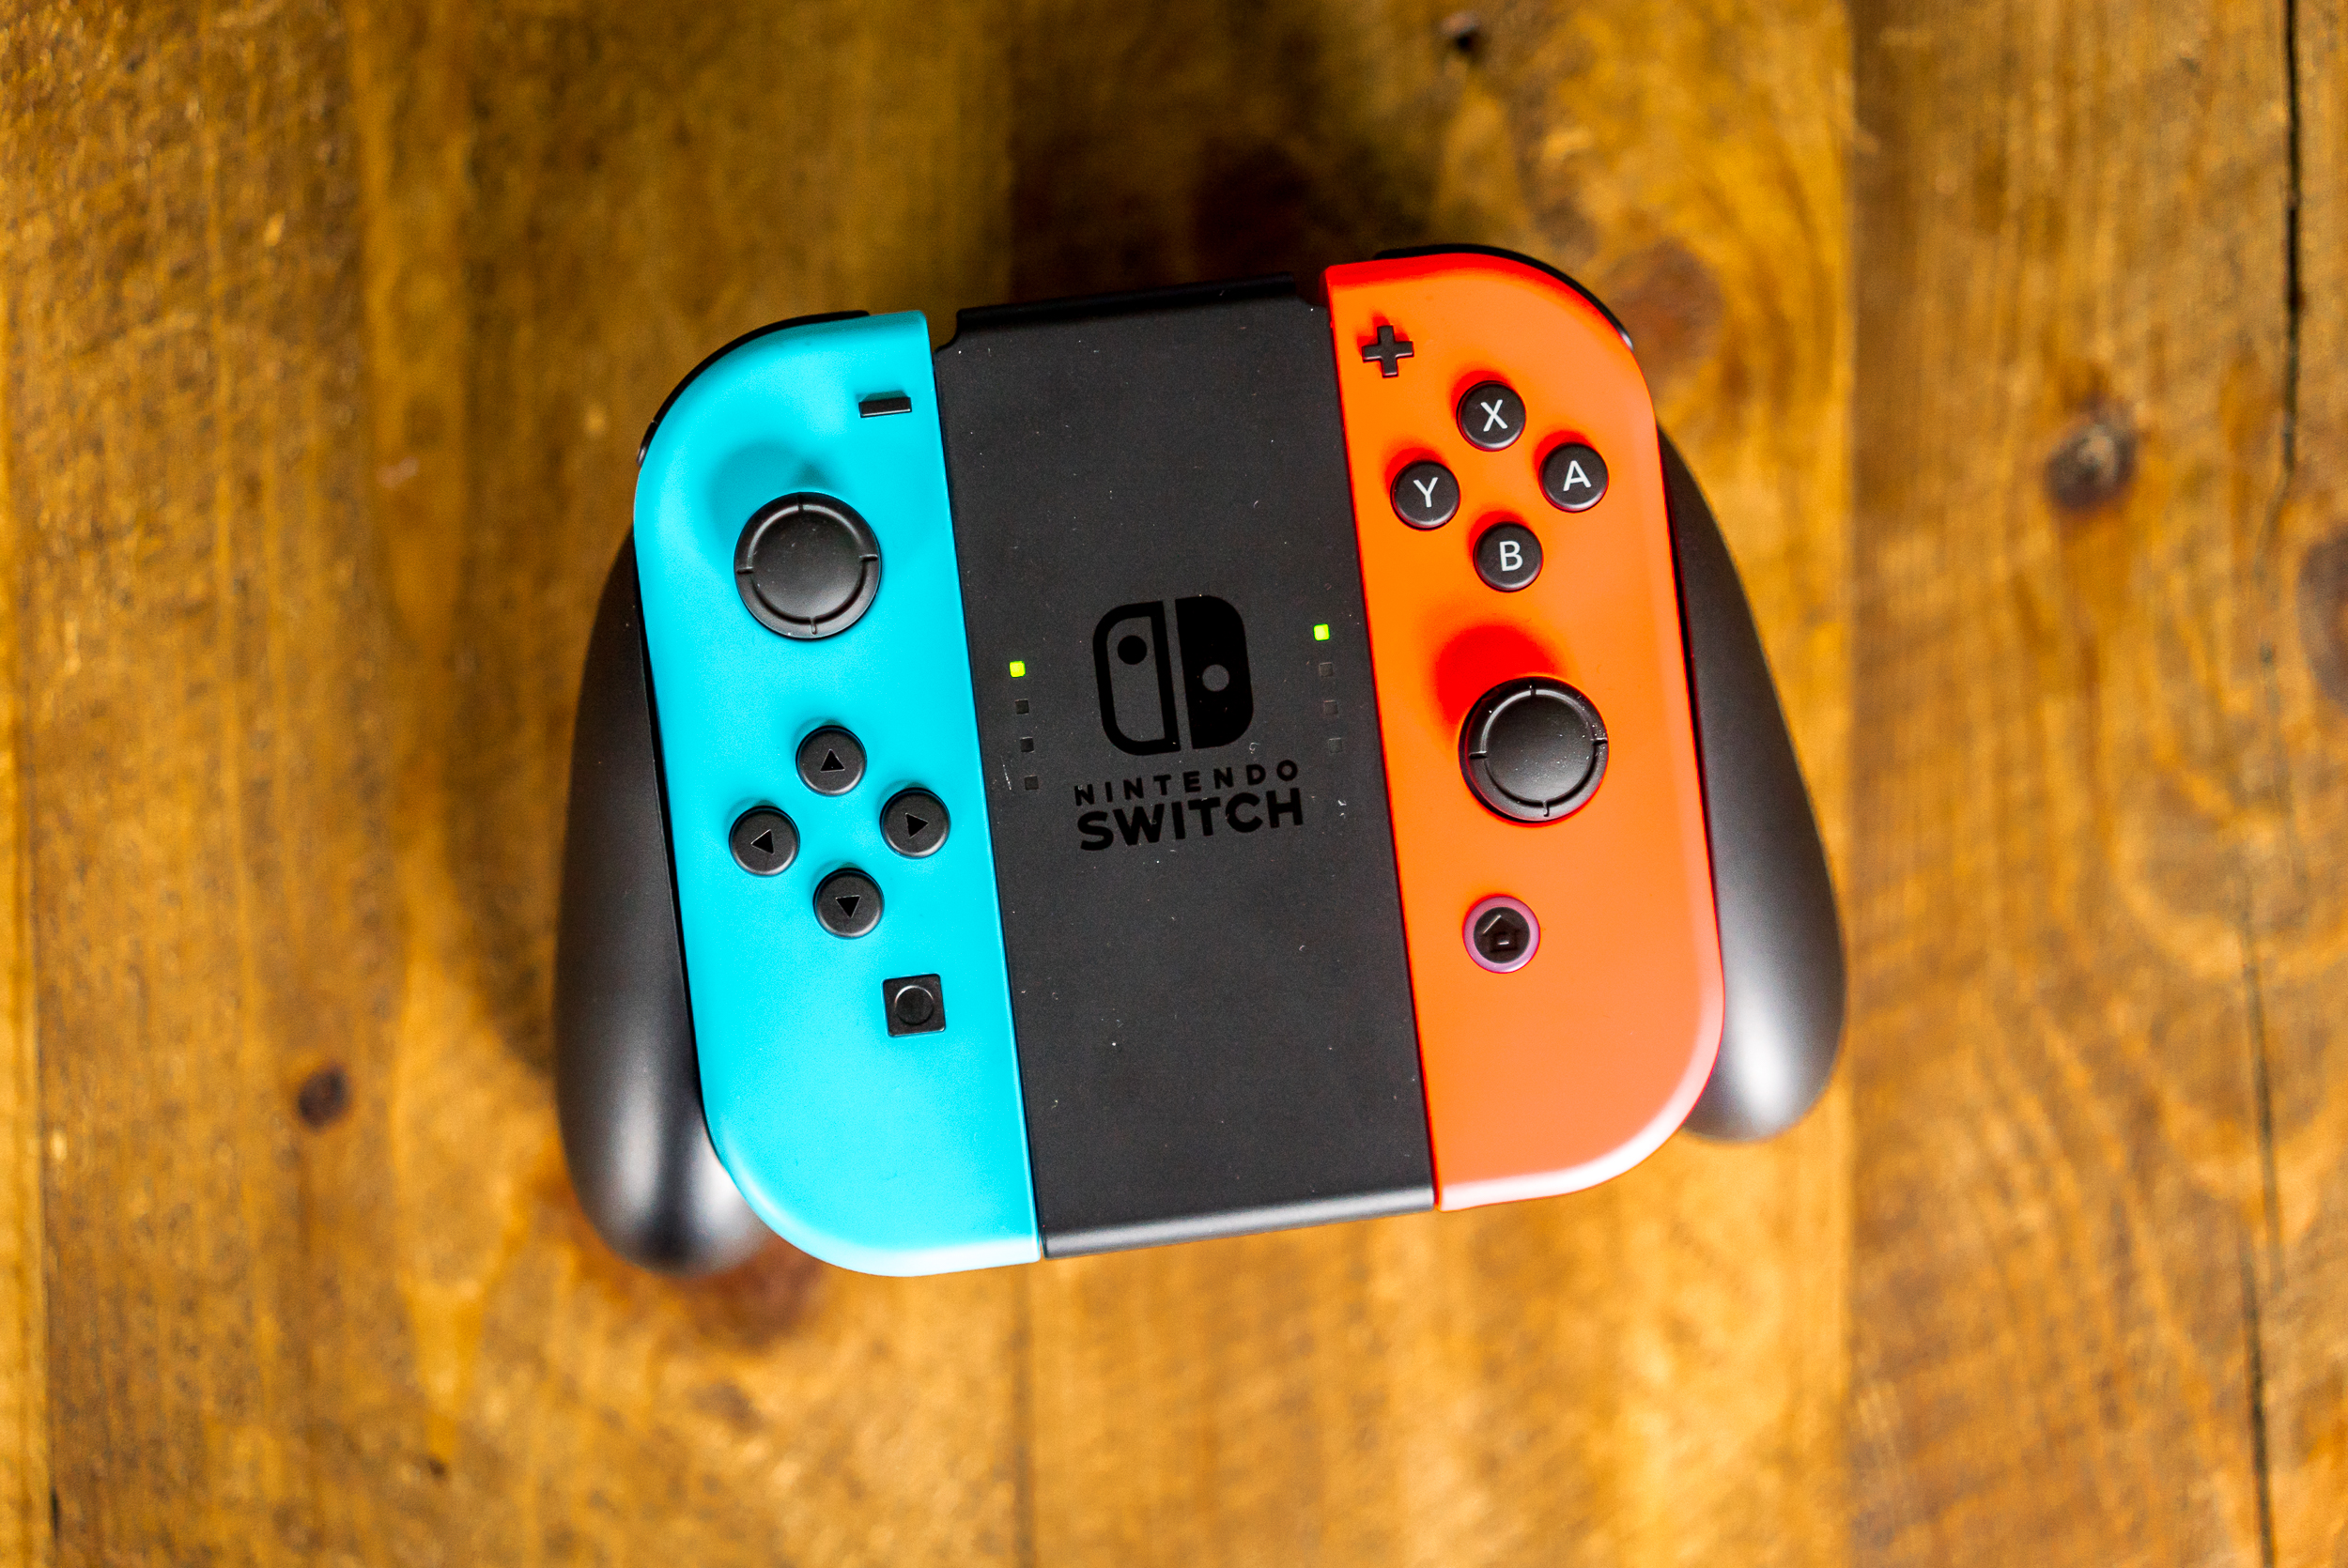 The Switch's Joy-Con controllers in their Grip cradle.